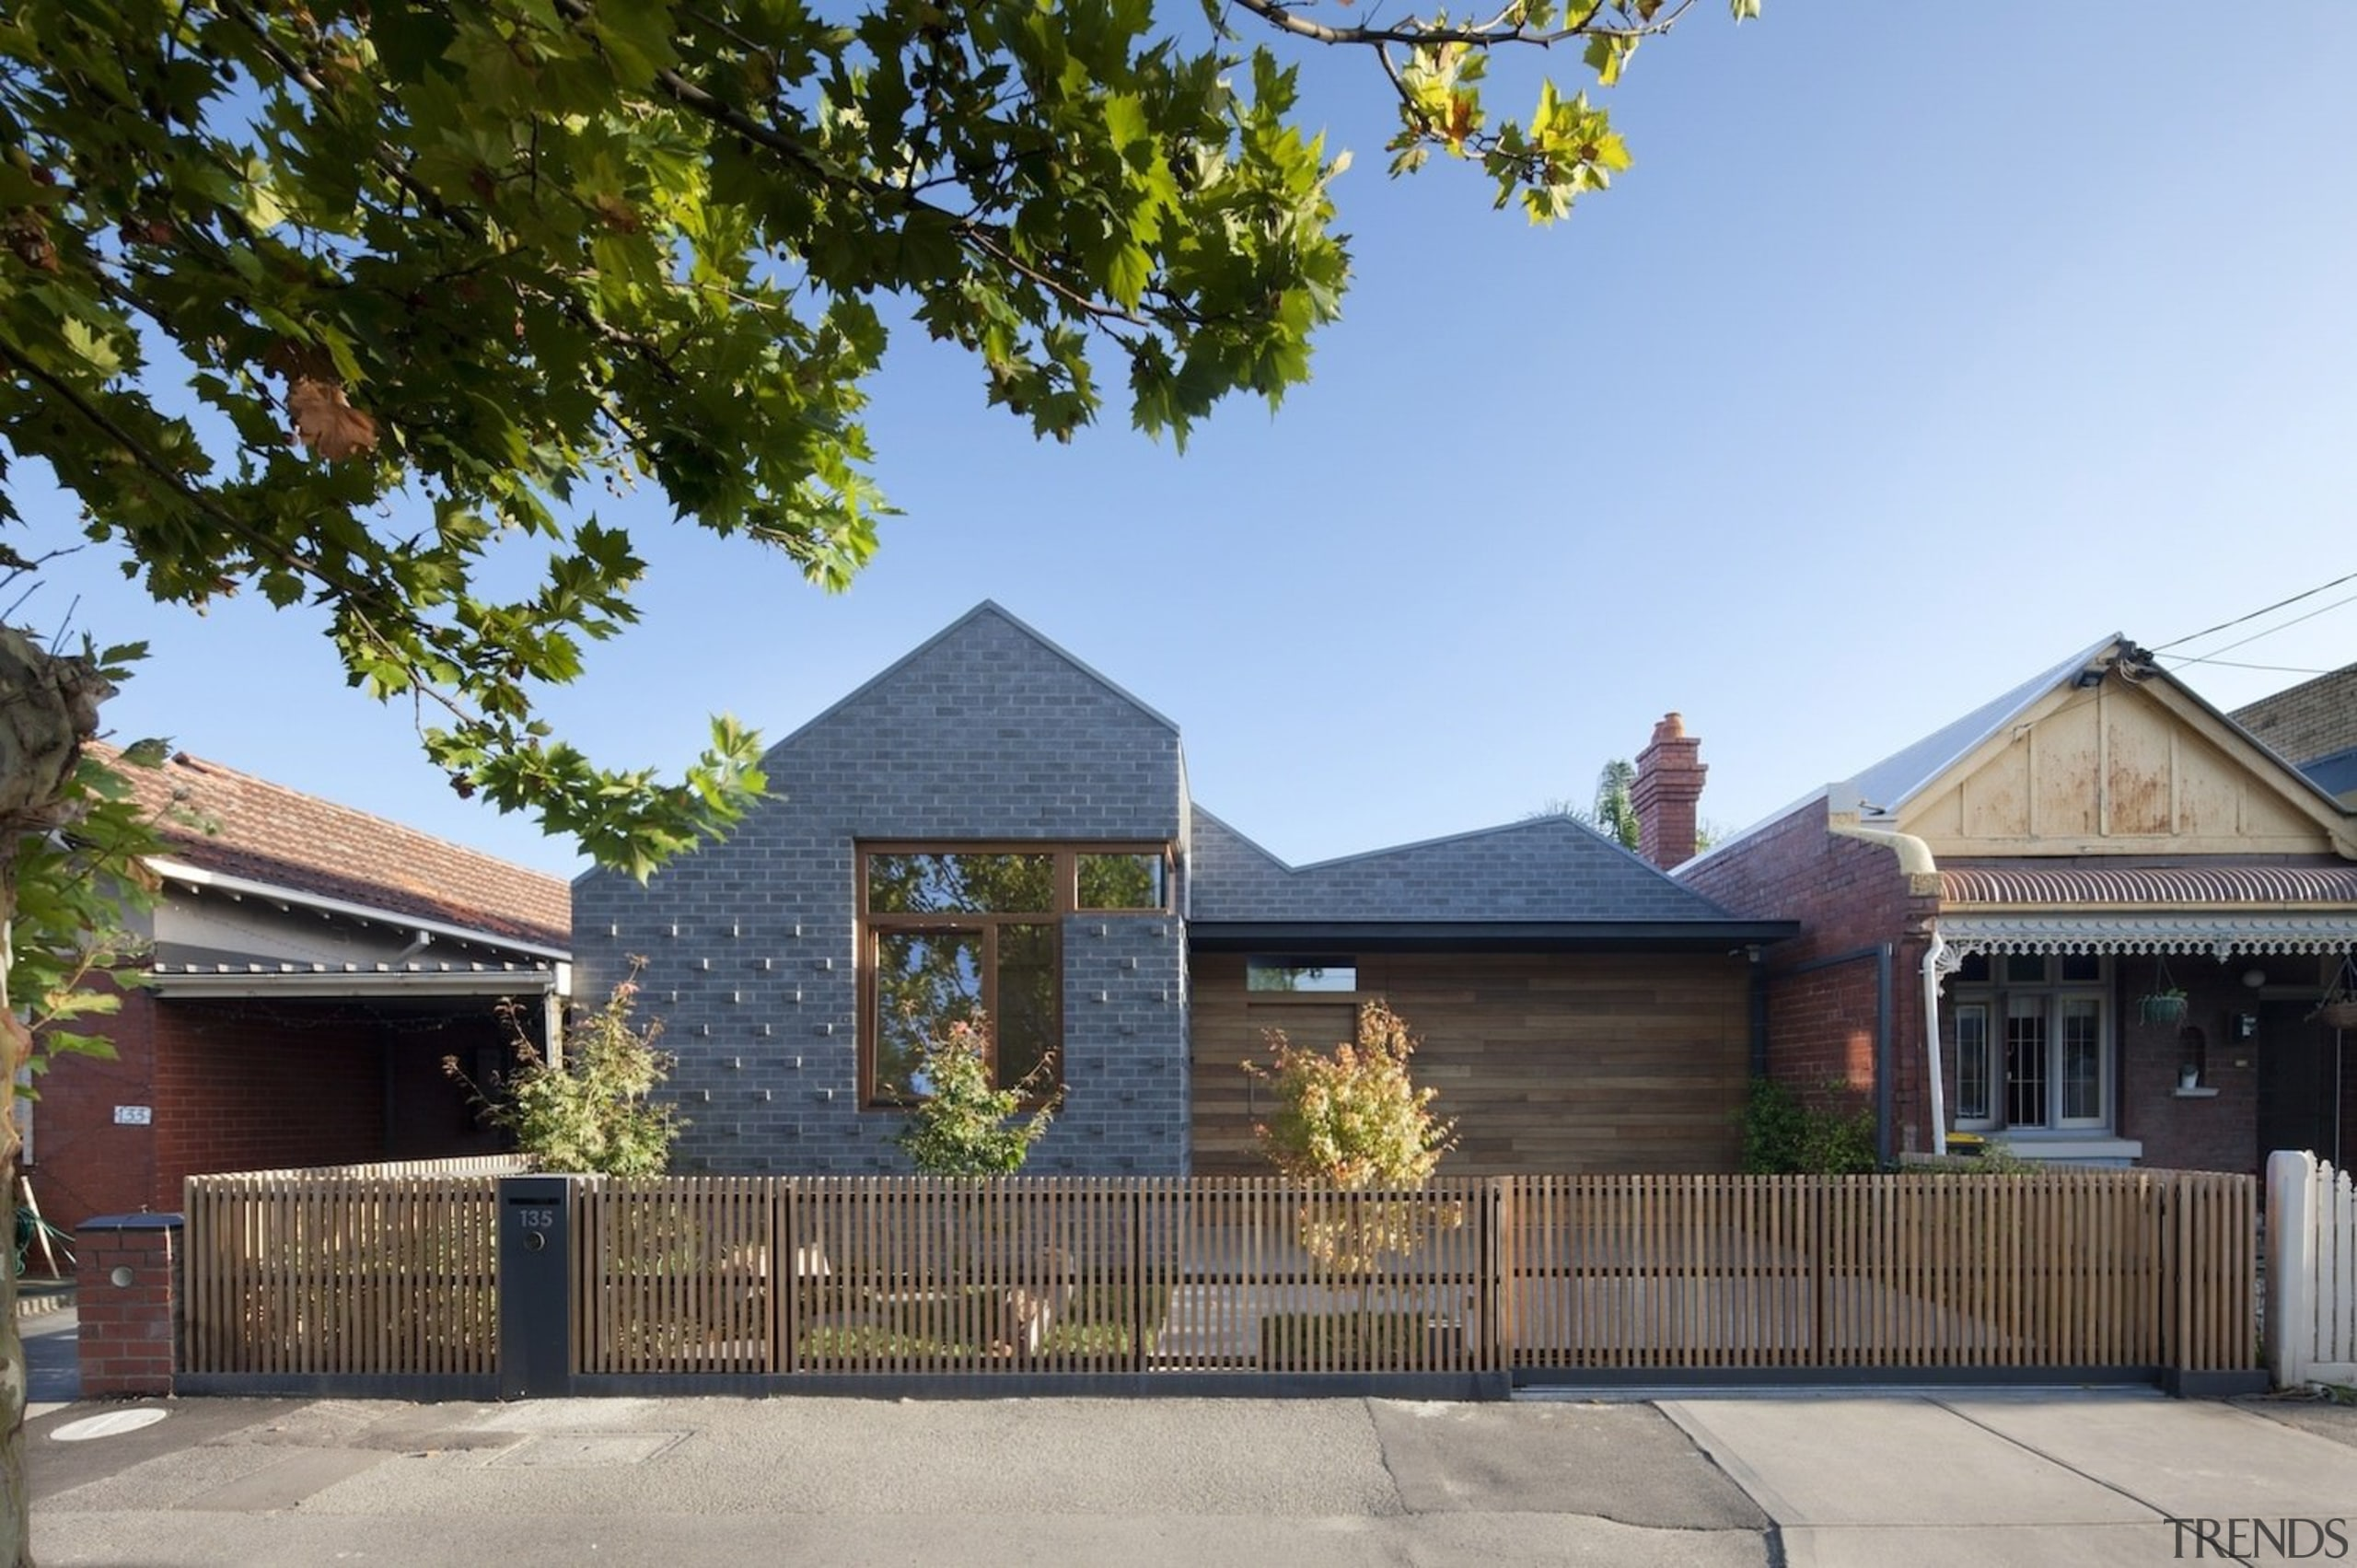 Architect: Steffen Welsch ArchitectsPhotography by Shannon McGrath cottage, estate, facade, home, house, property, real estate, residential area, roof, teal